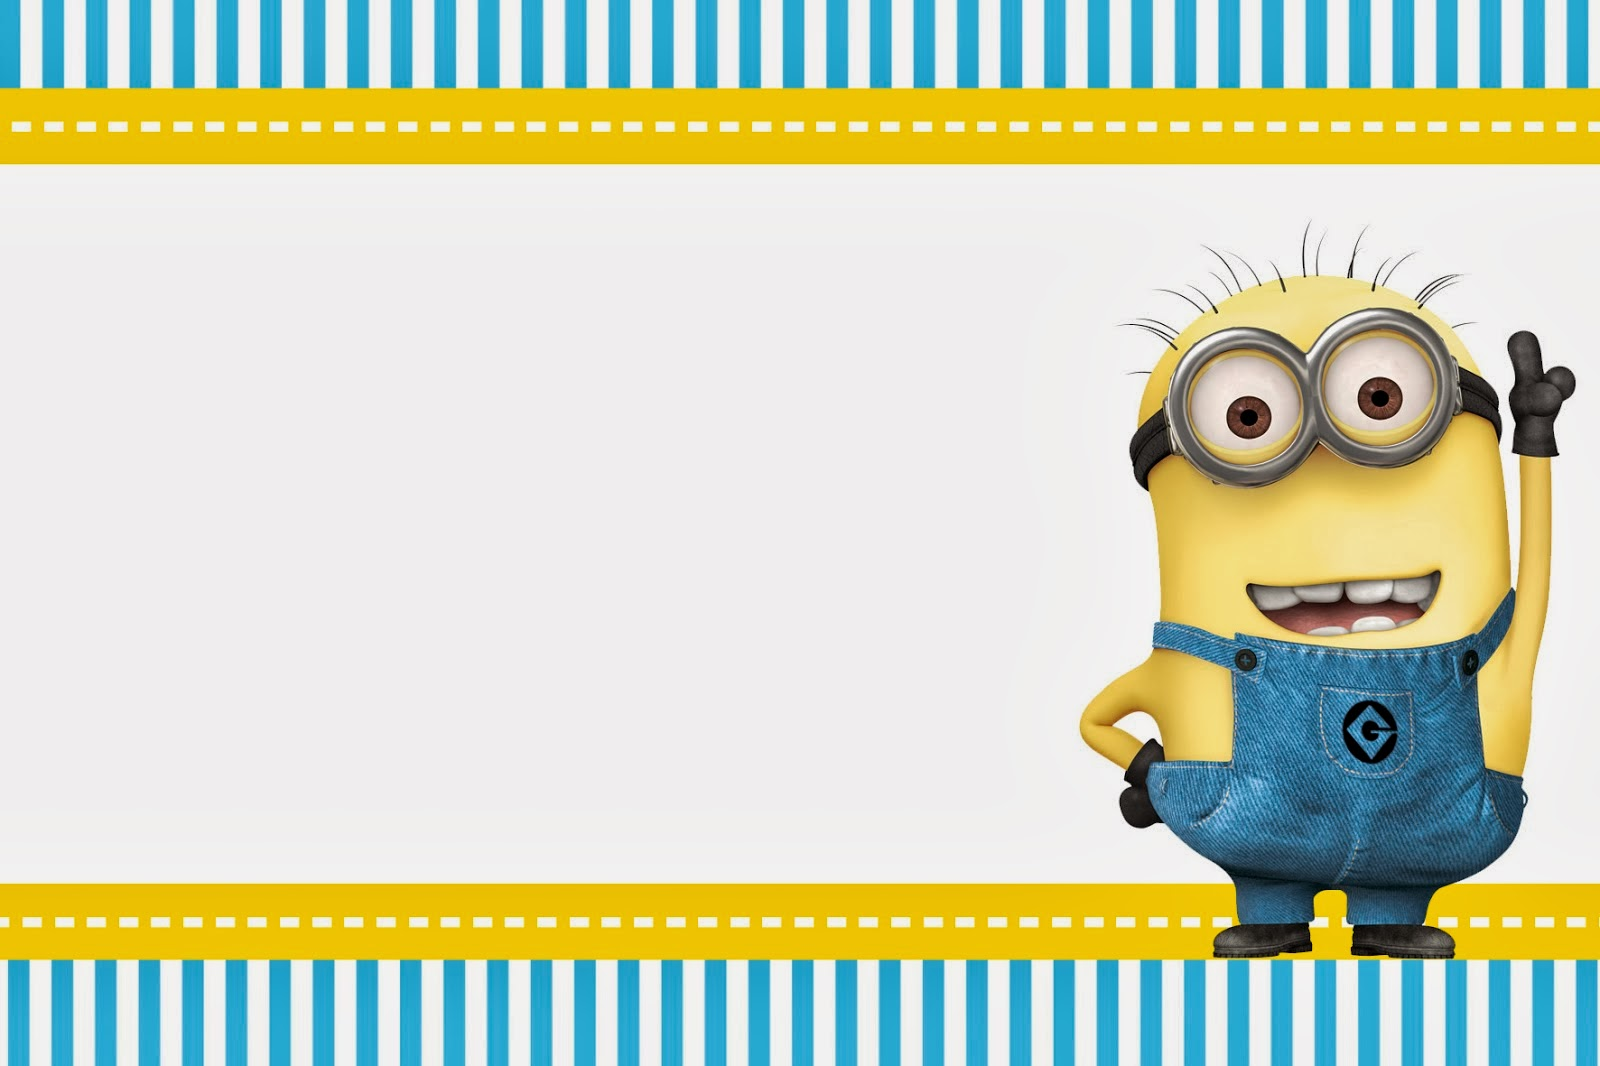 Minion Frame Wallpapers High Quality | Download Free